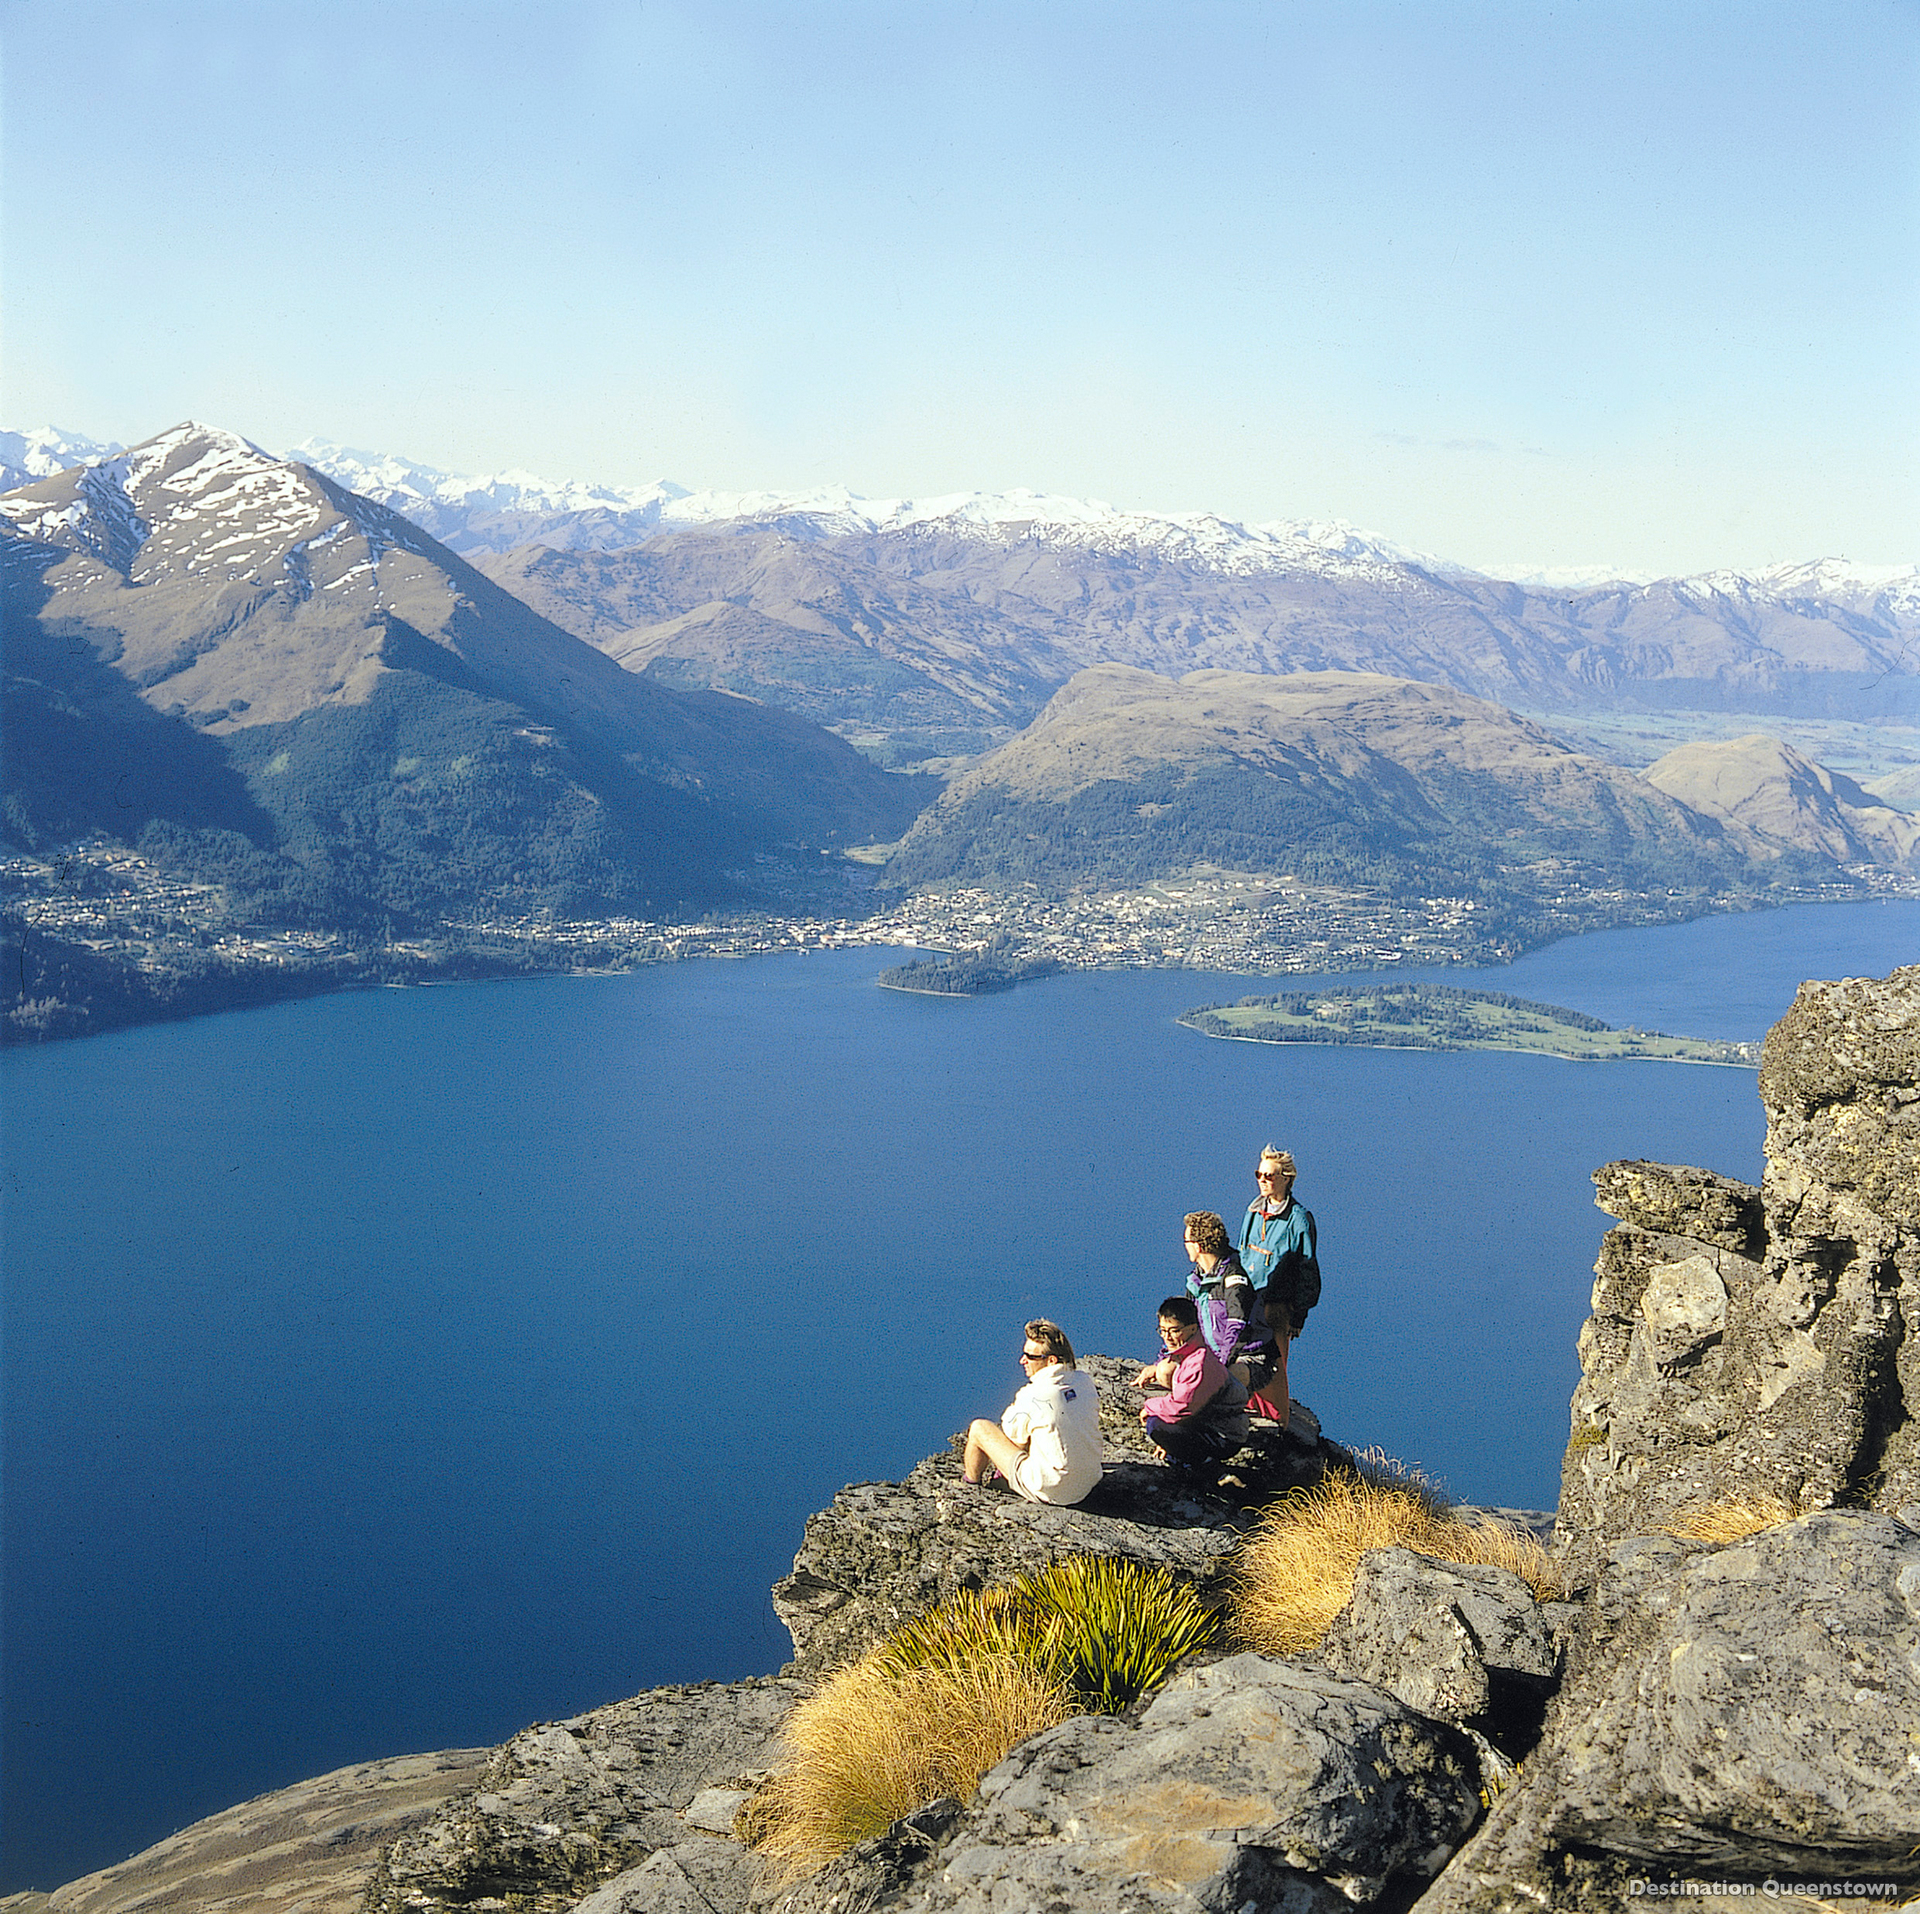 L343-Lake-Wakatipu-Queenstown-Destination-Queenstown.jpg